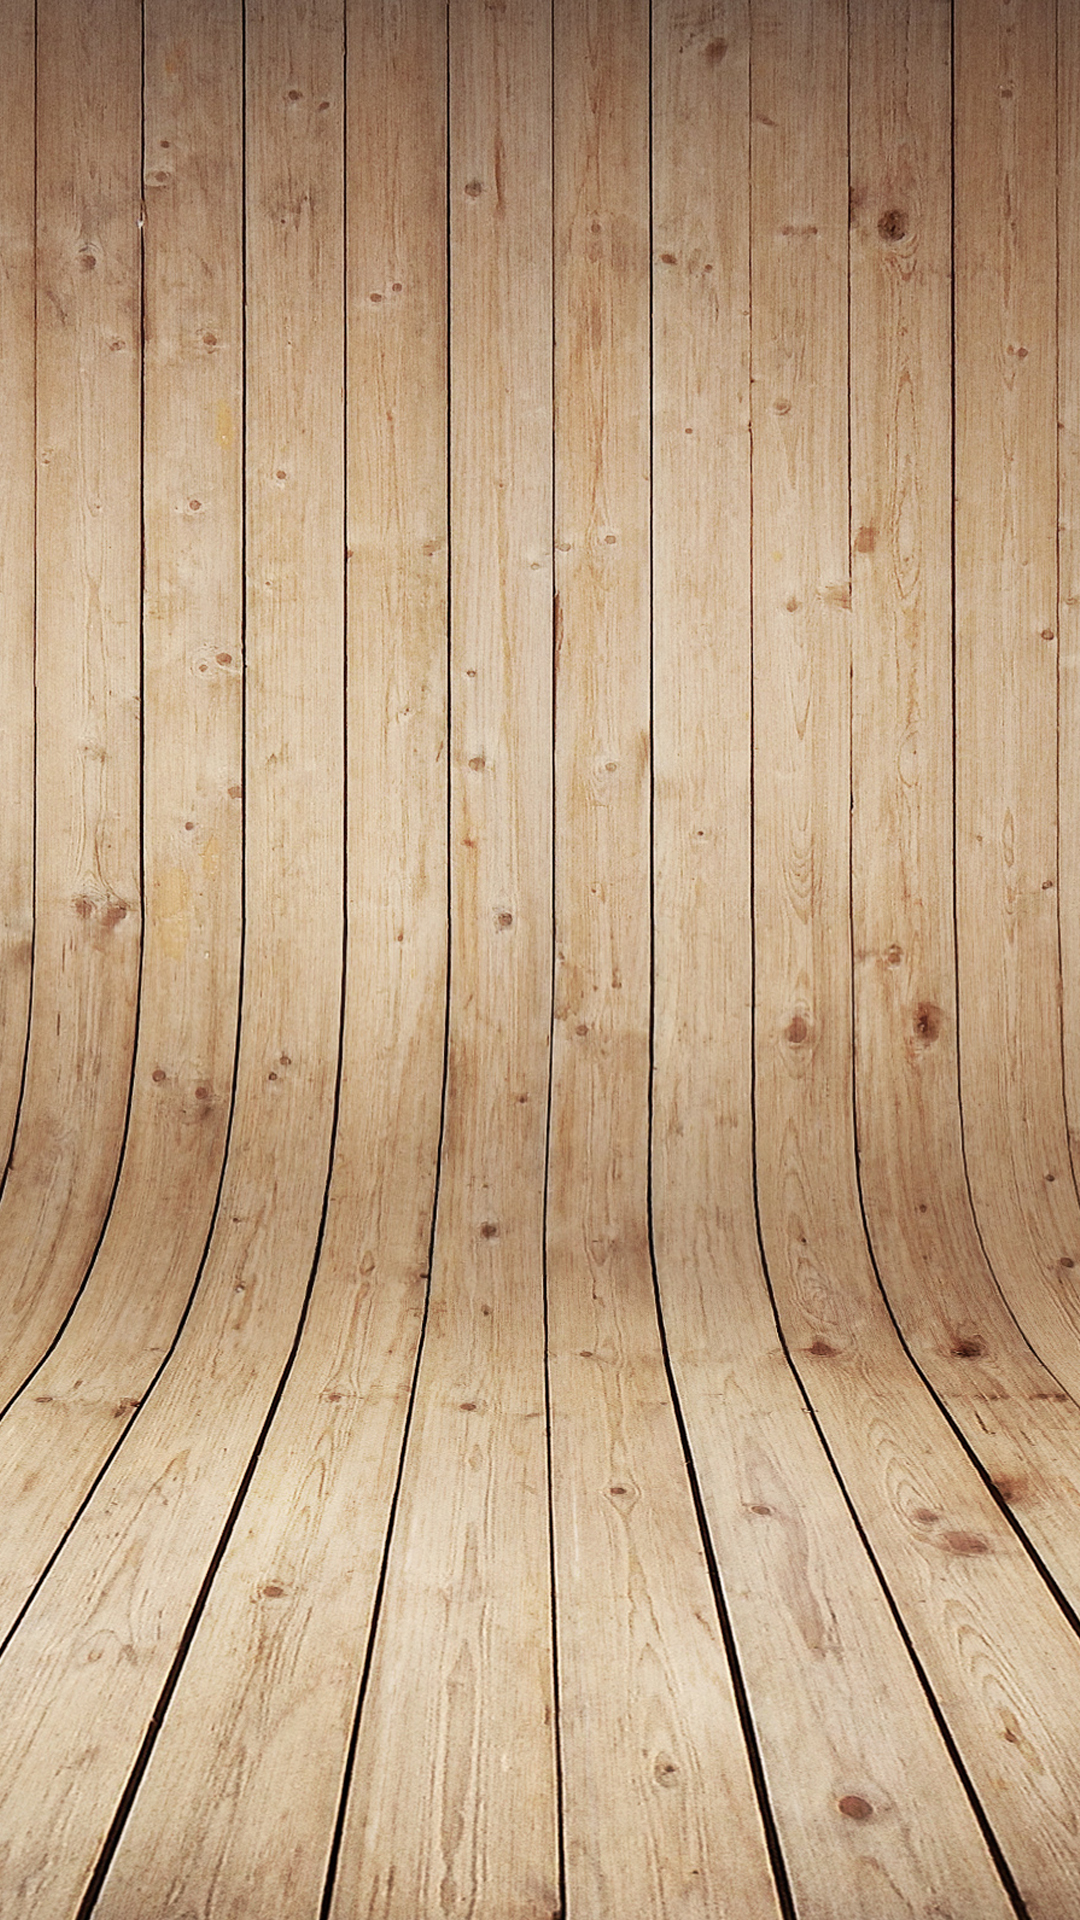 Curved Wood Hd Wallpaper For Your Mobile Phone